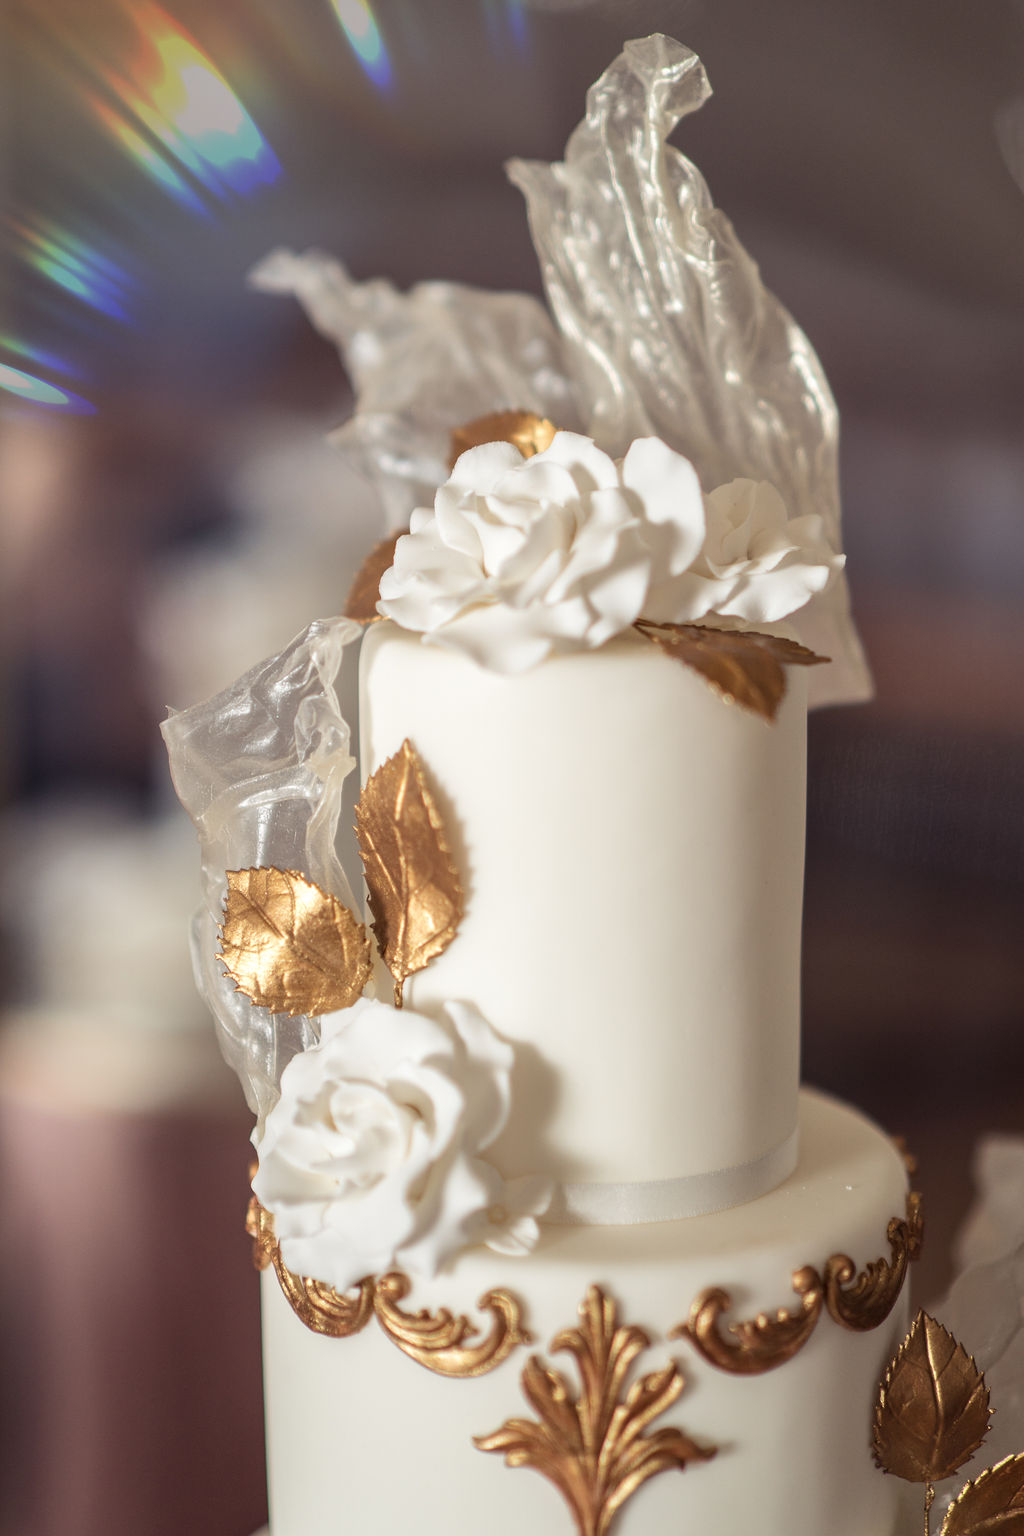 Ornate 3 tier gold and white wedding cake with white sugar flowers for movie themed wedding day